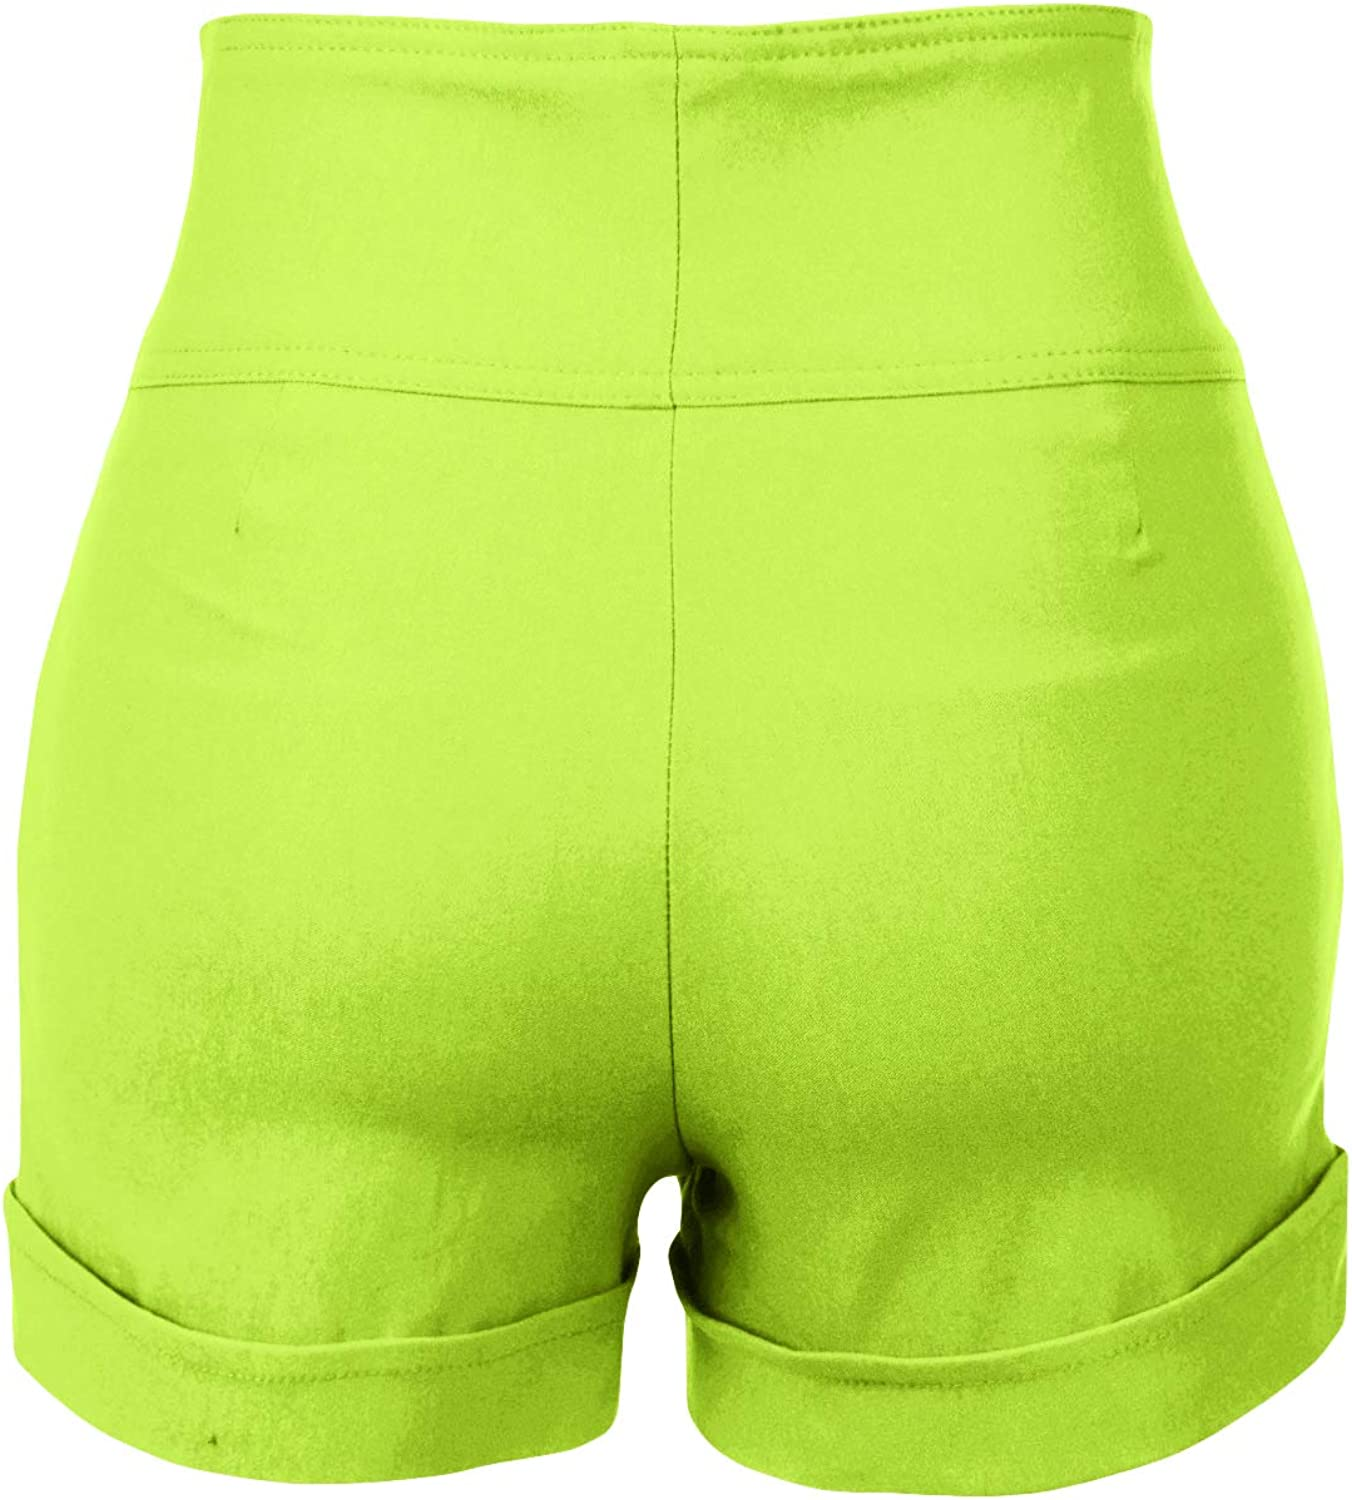 RK RUBY KARAT Womens High Waisted Front Button Retro Vintage Pin Up Sailor Shorts with Pockets